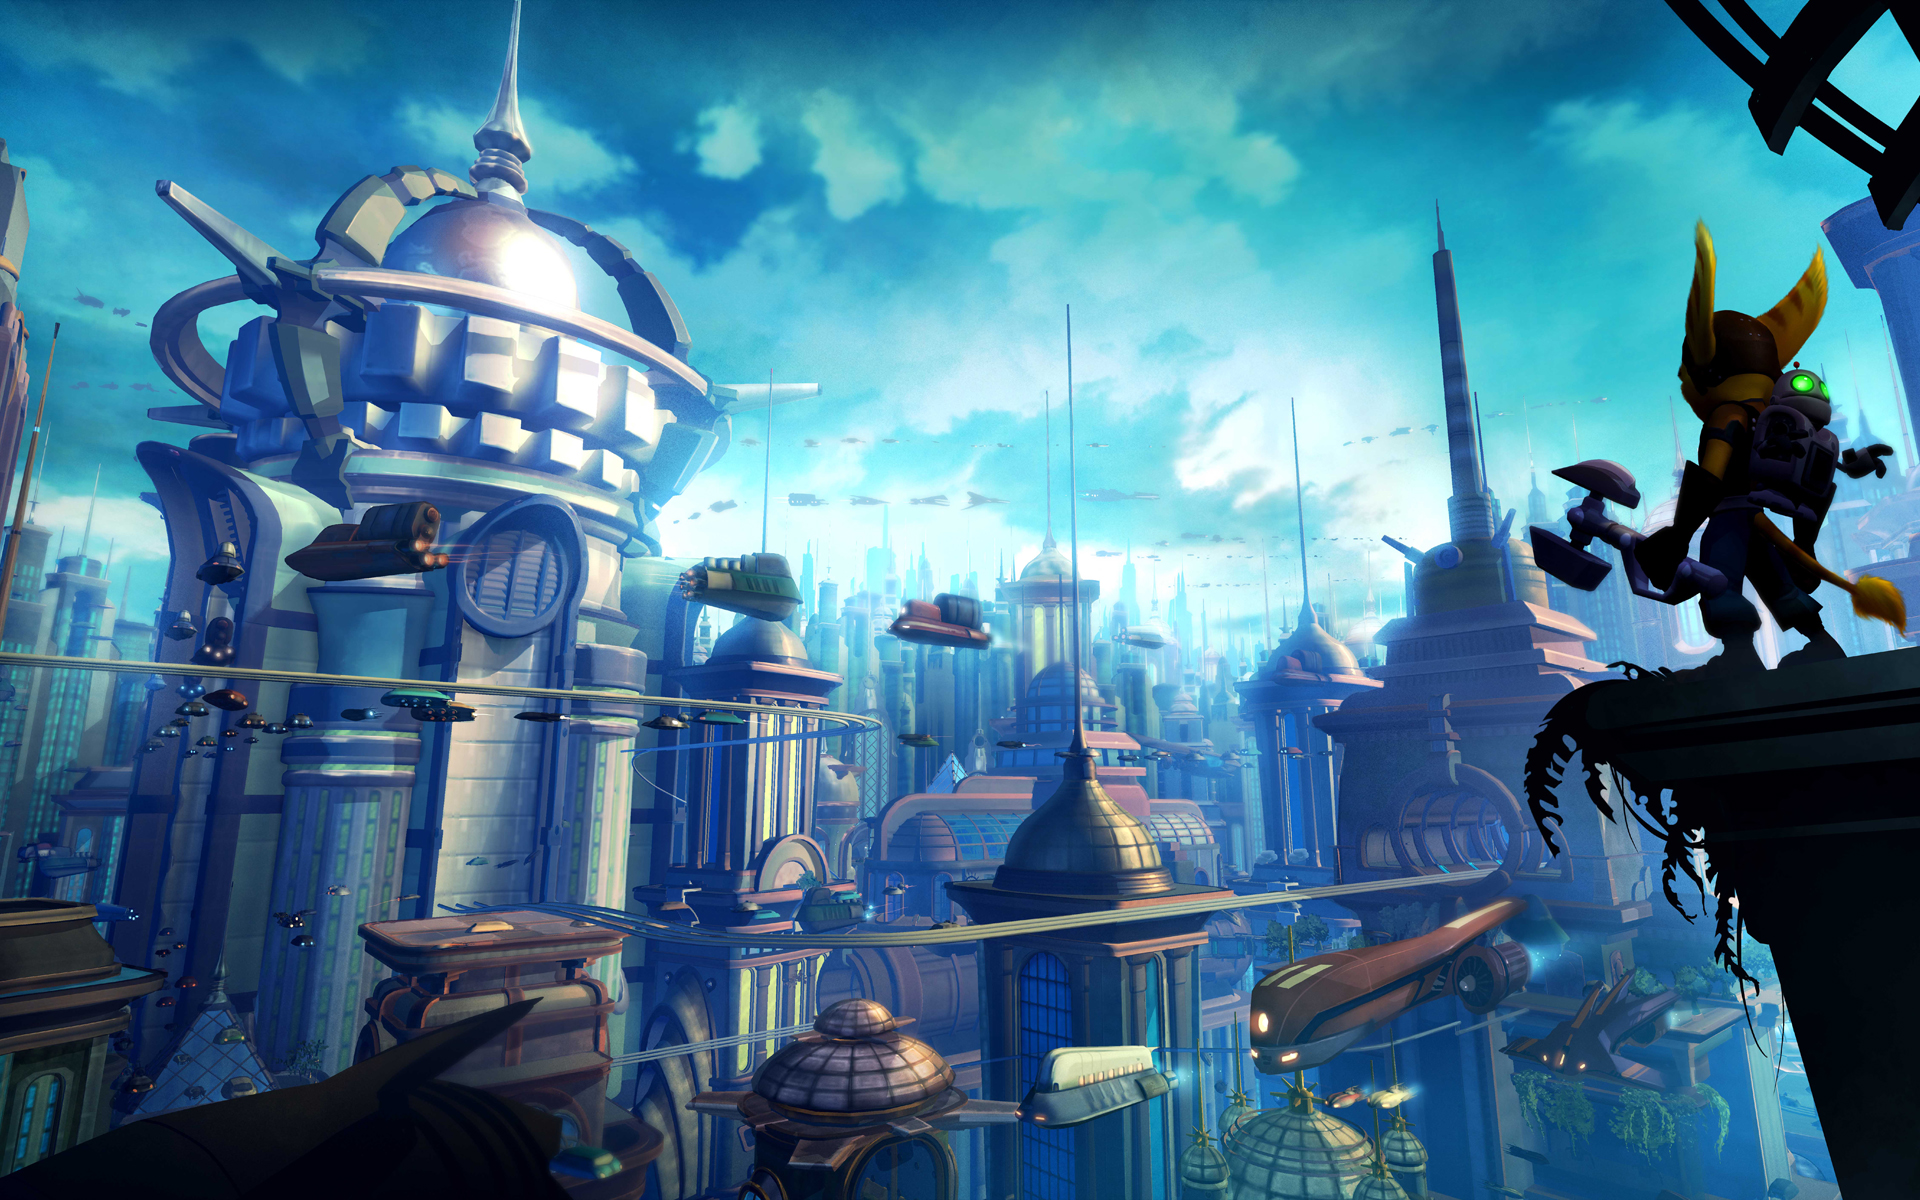 http://www.weesk.com/wallpaper/jeux-video/ratchet-clank/metropolis-ratchet-clank-jeux-video.jpg